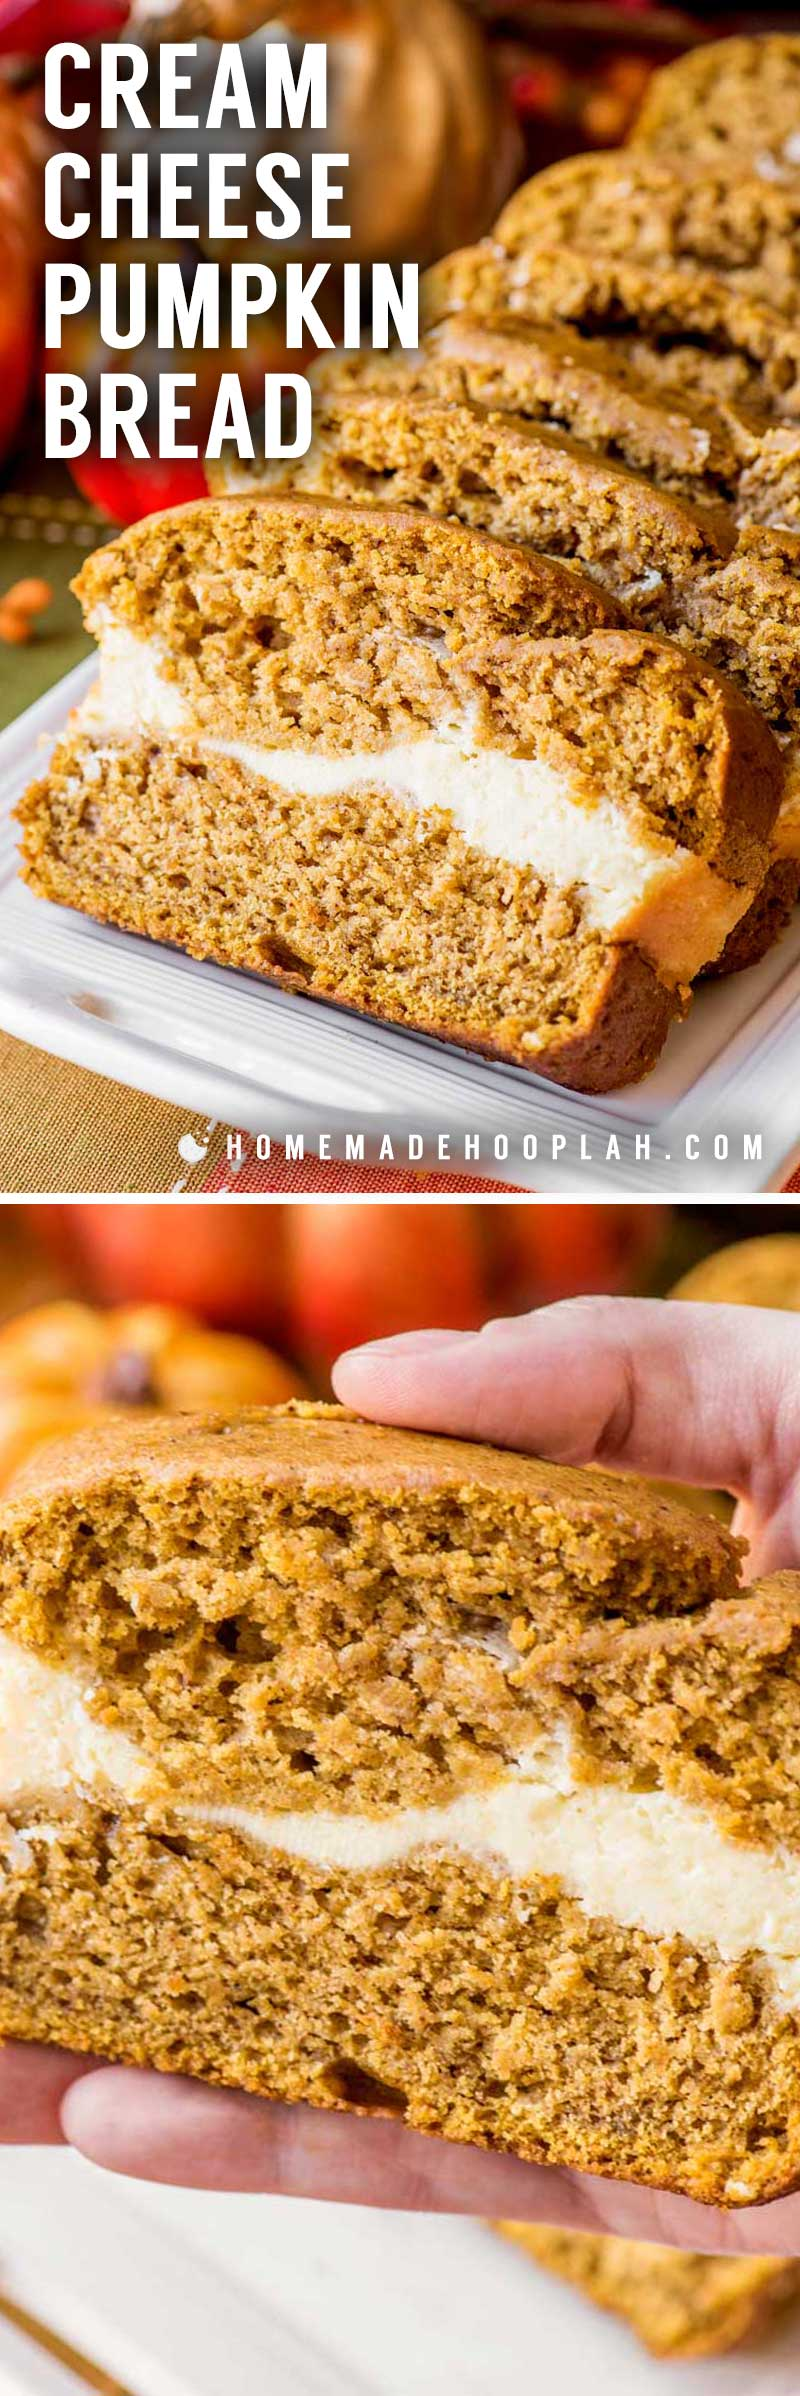 Cream Cheese Filled Pumpkin Bread! This no-fuss recipe makes an amazingly soft and spongy pumpkin bread with a sweet swirl of cream cheese in the middle. Perfect for fall! | HomemadeHooplah.com